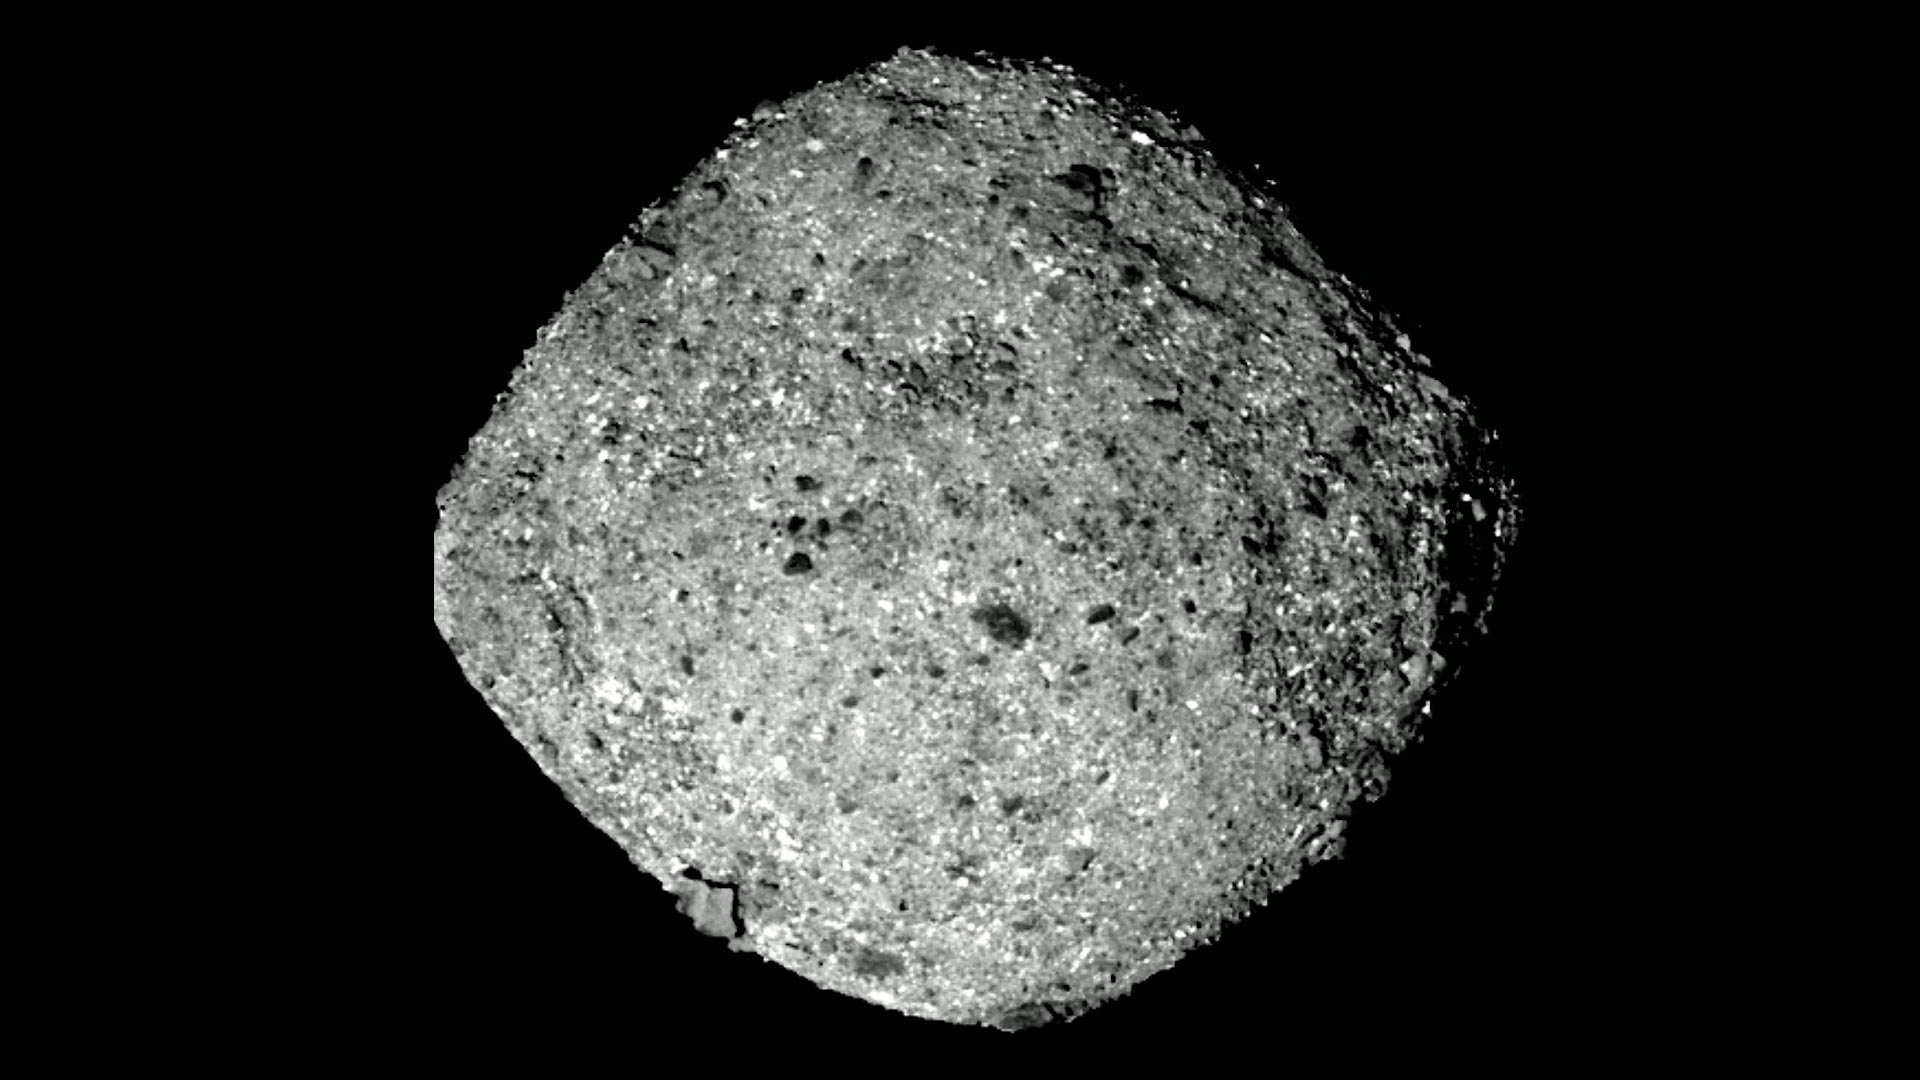 Close up of asteroid Bennu.